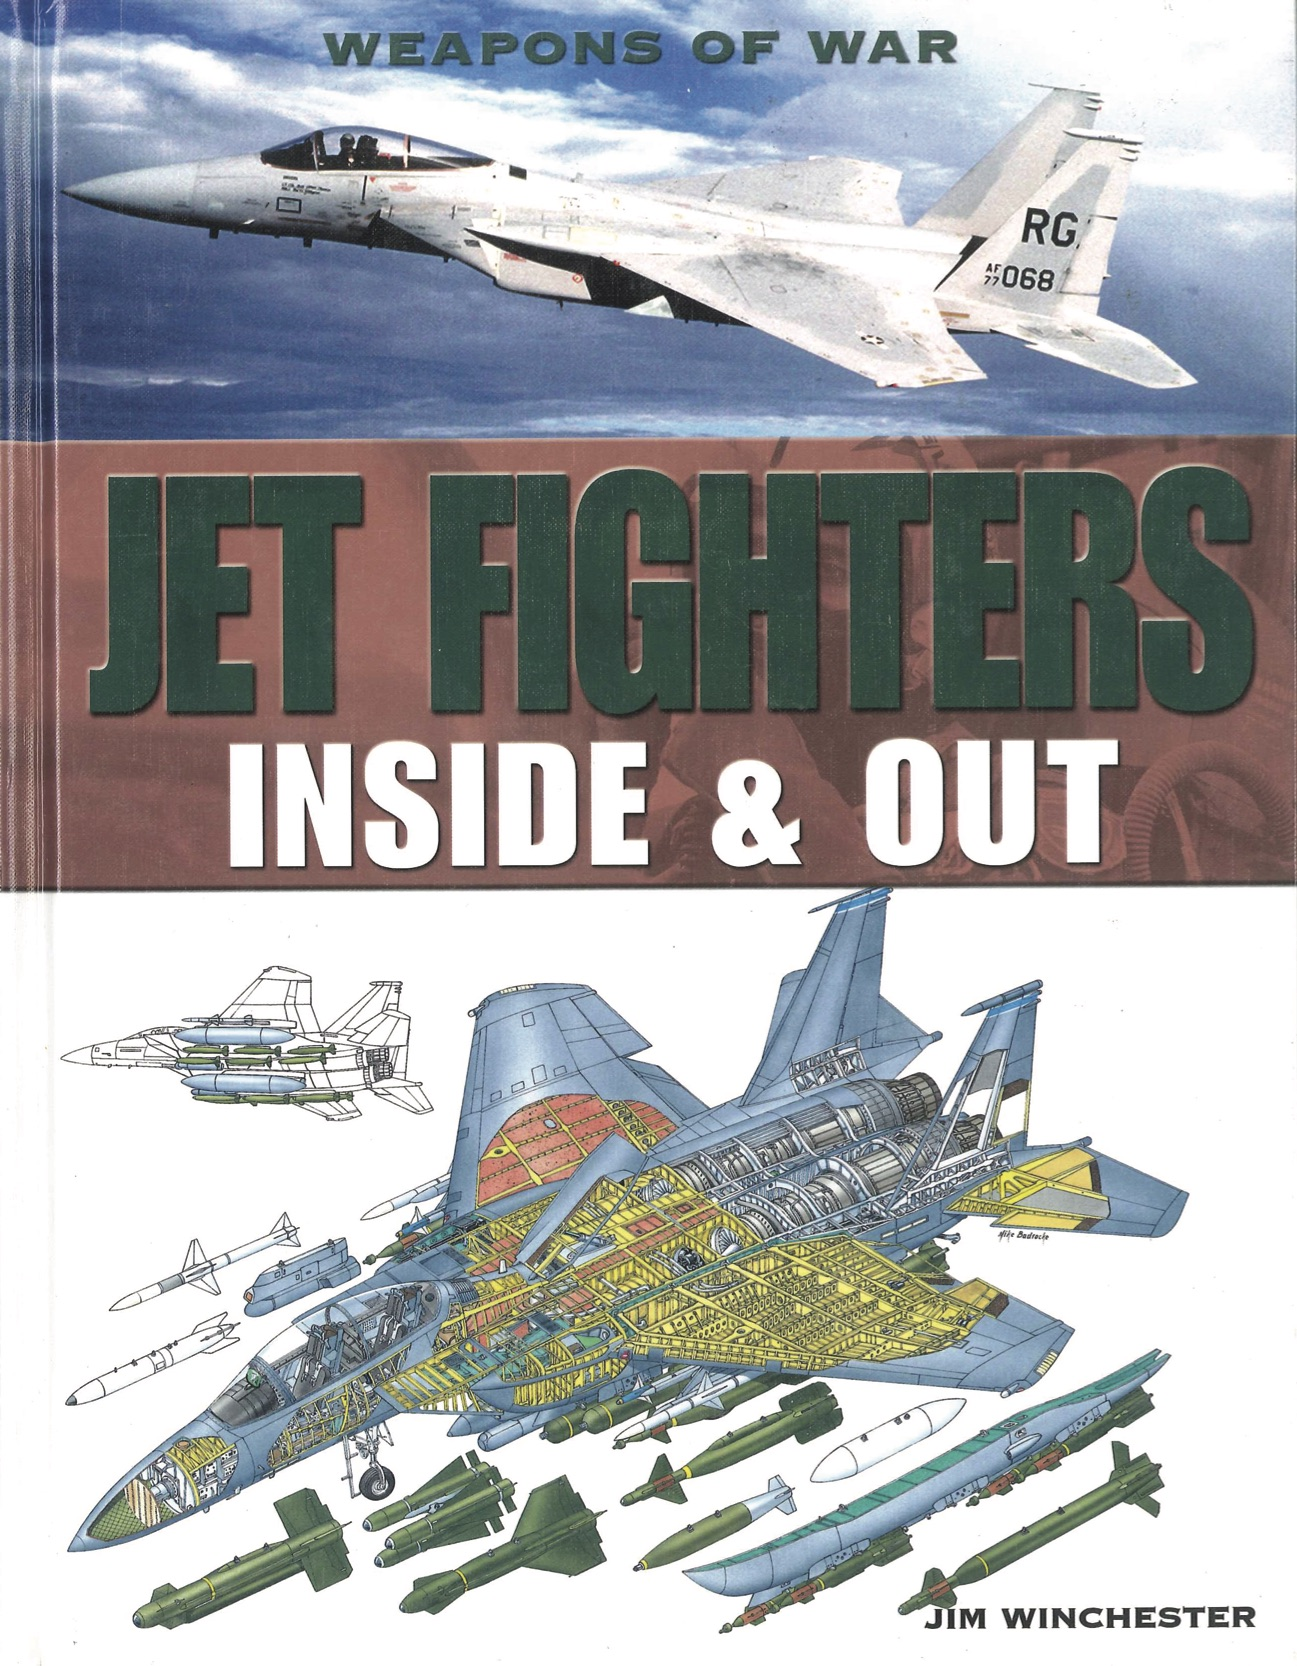 Inside & Out: Jet Fighters